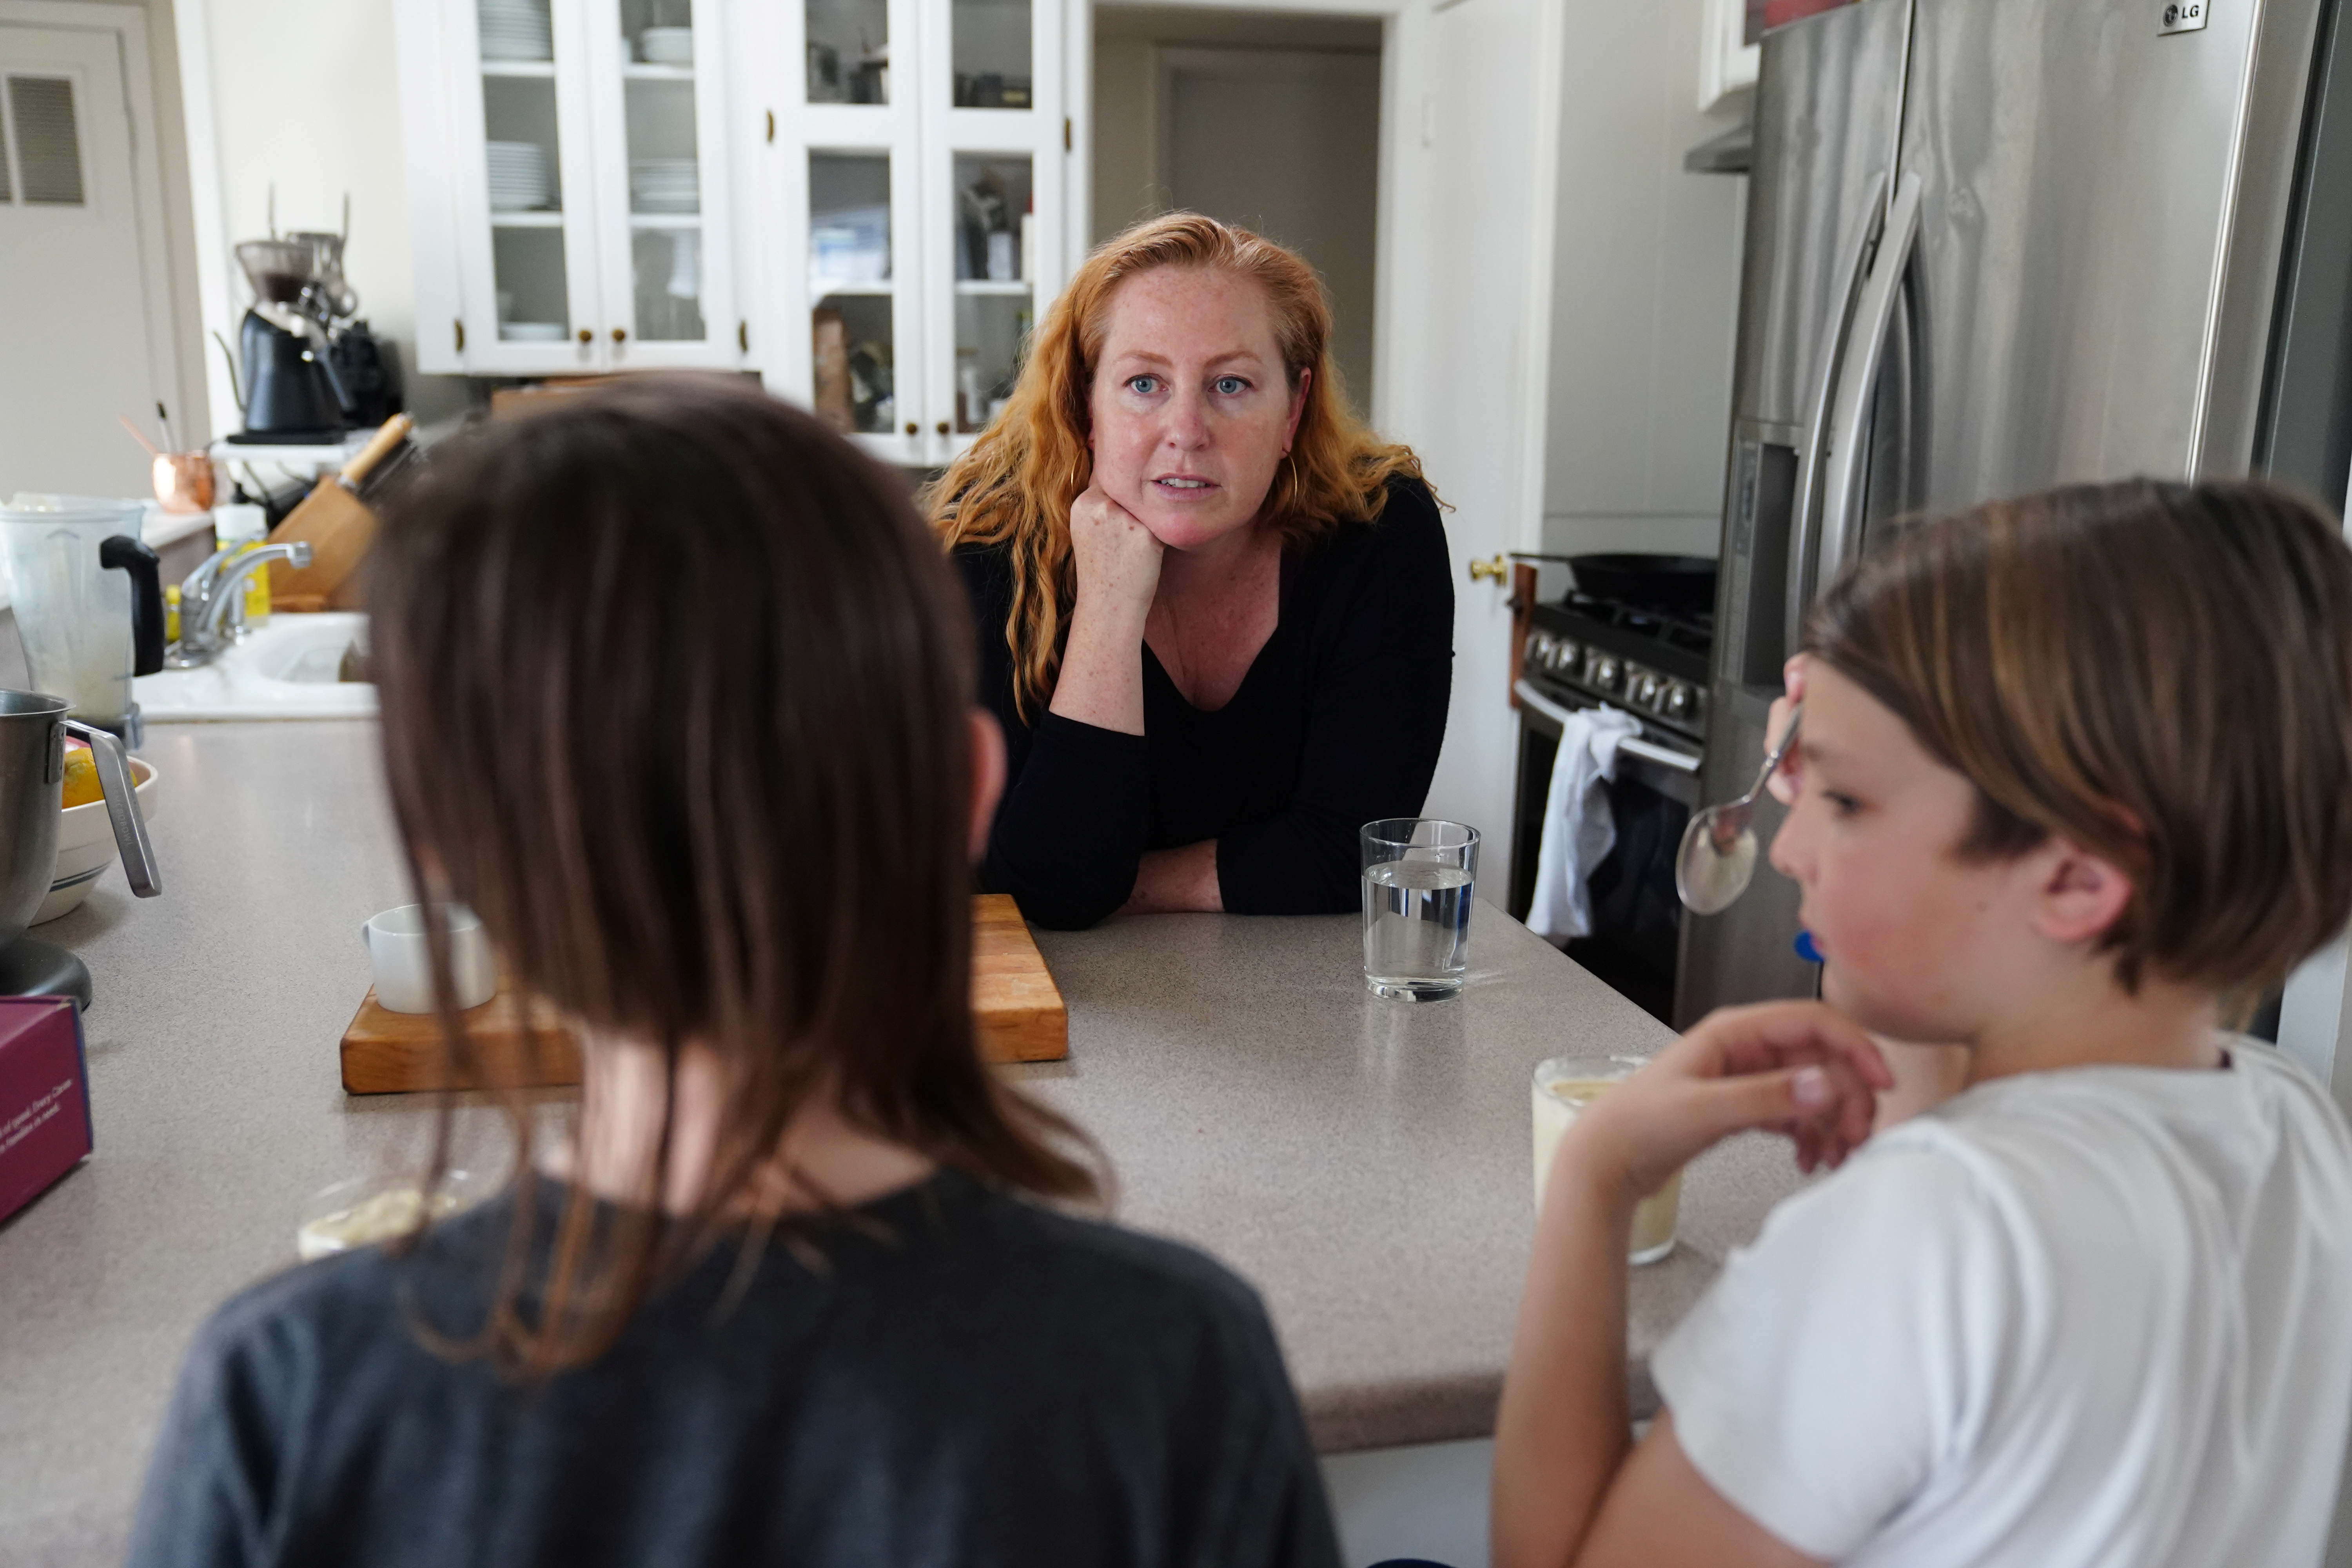 Kate Sullivan Morgan, who relocated with her family from San Francisco so her children could attend school in-person, gets her children an after school snack in Austin, Texas, U.S., March 12, 2021. Picture taken March 12, 2021.  REUTERS/Ilana Panich-Linsman